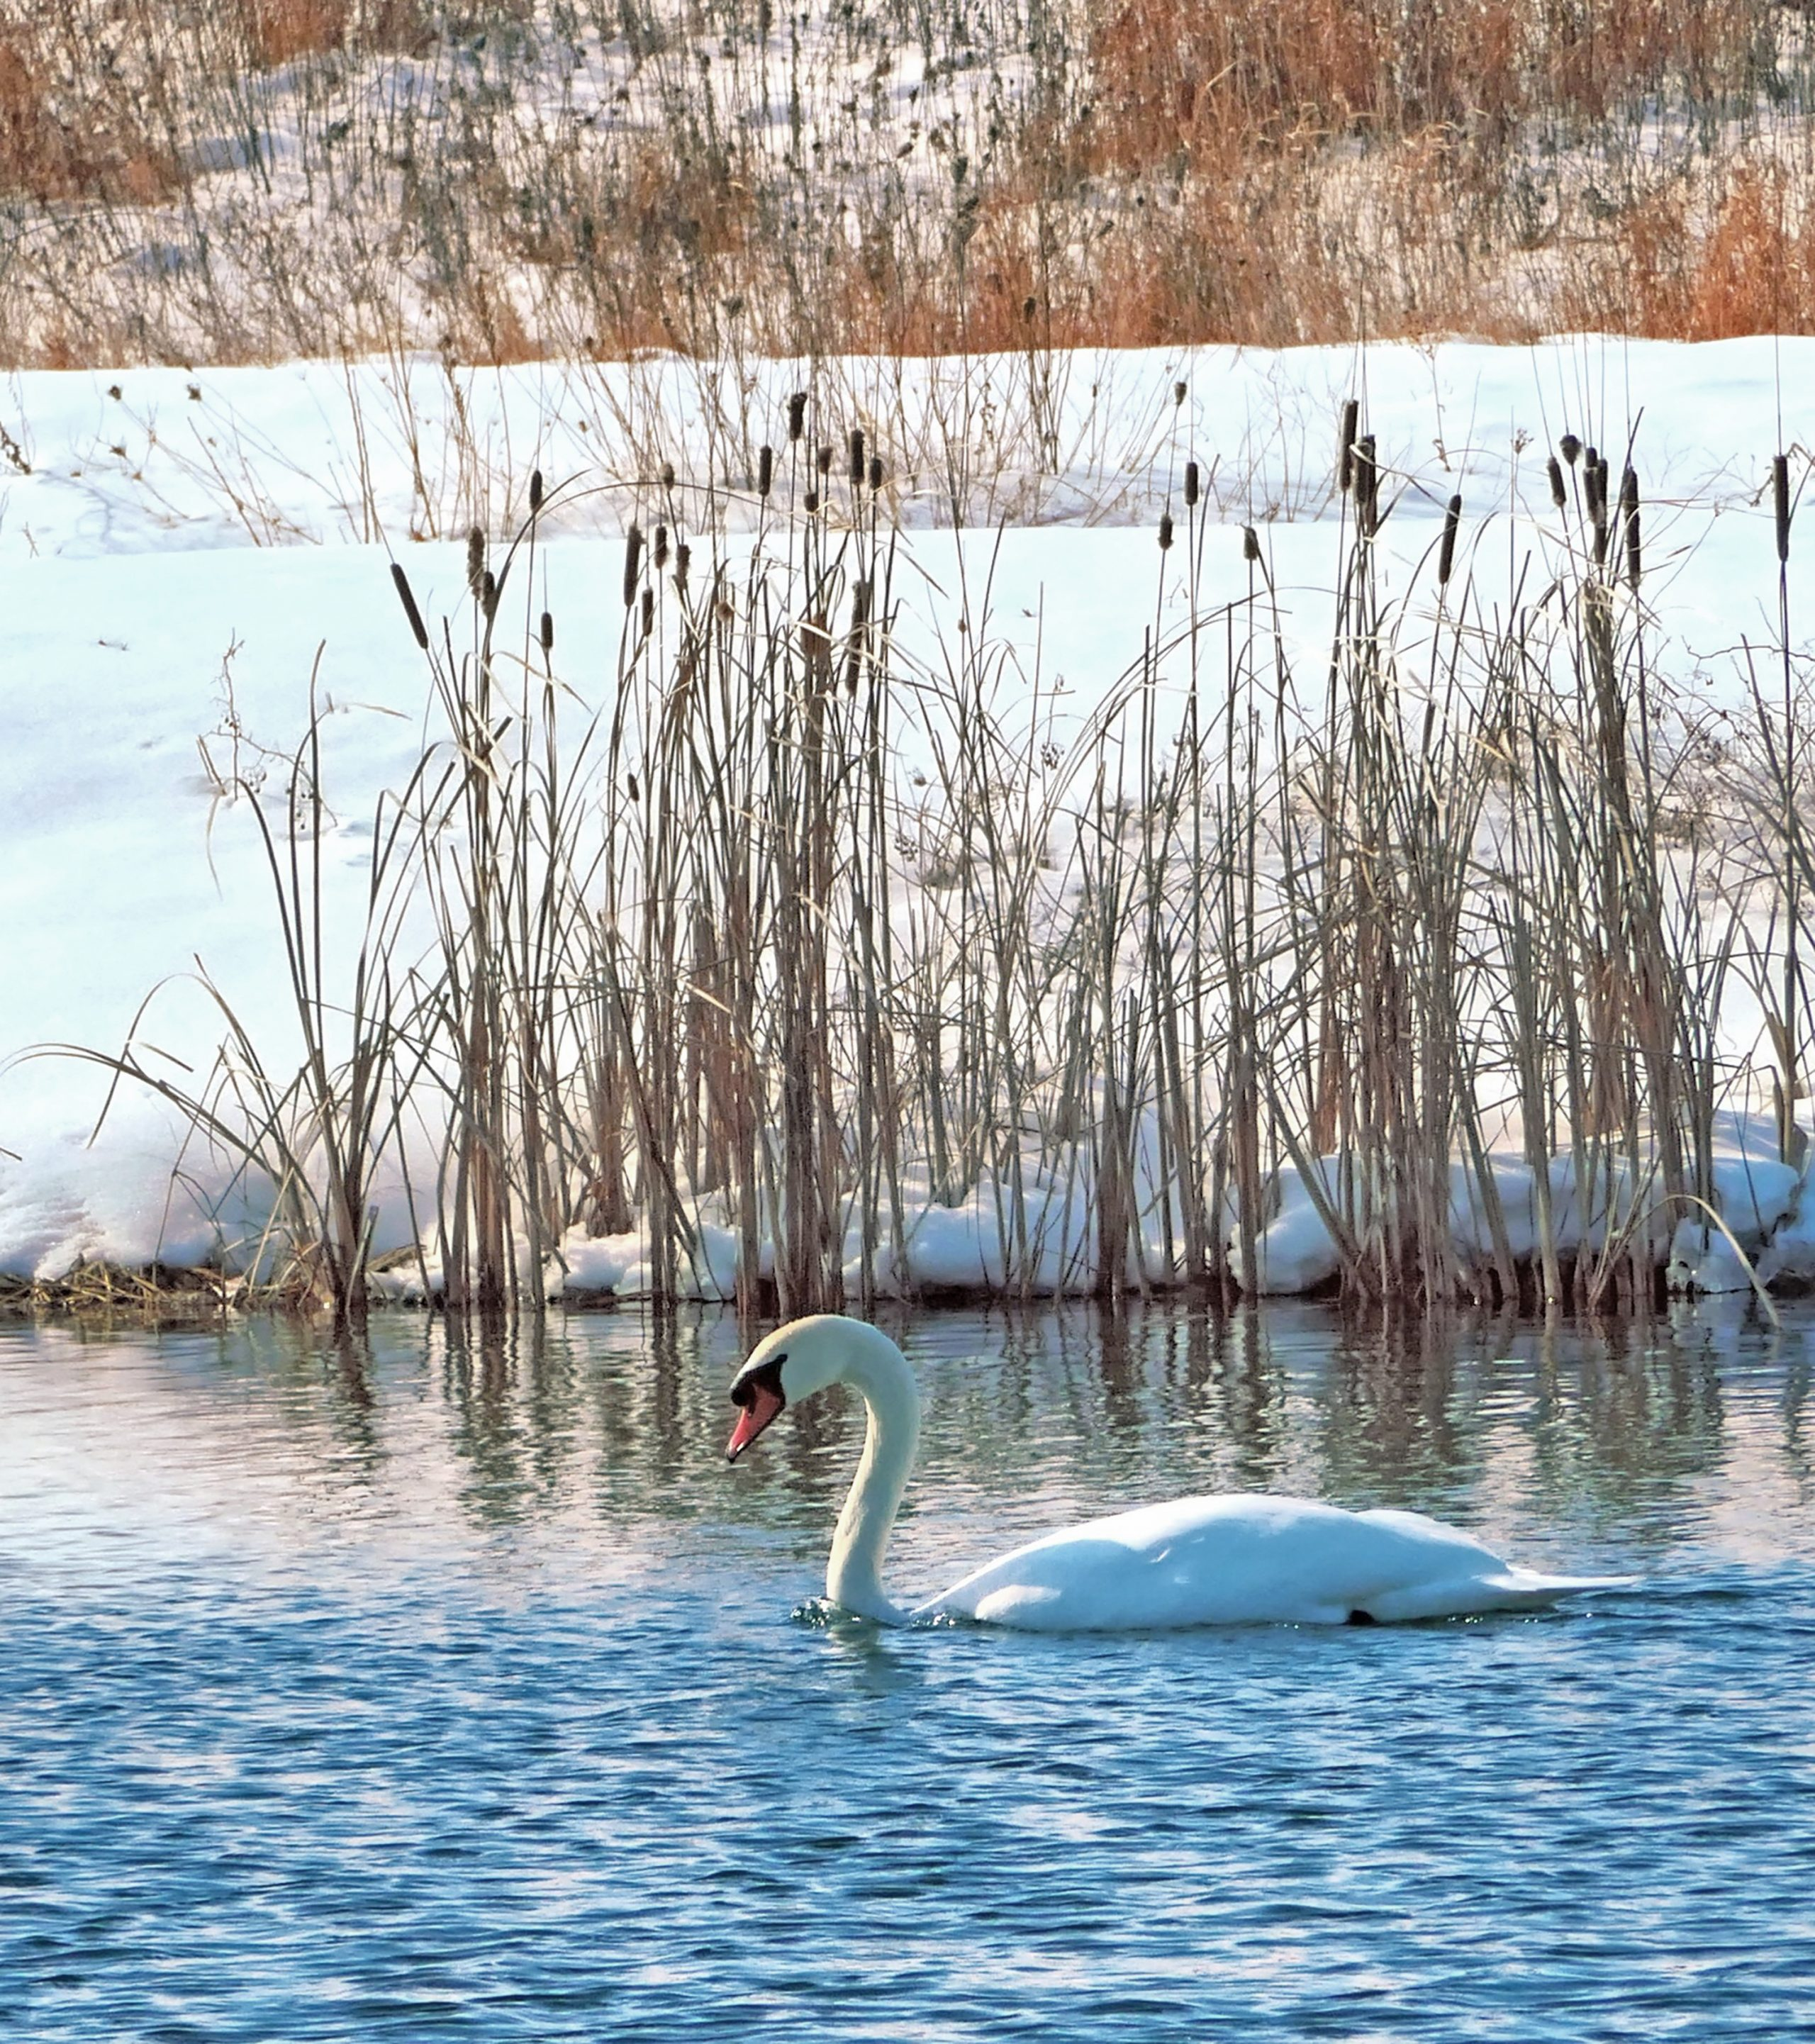 (3/3) This one is particularly blue. Photo: Leticia Shaddix, wildlife, nature, animal, bird, swan, mute swan, winter, snow, pond